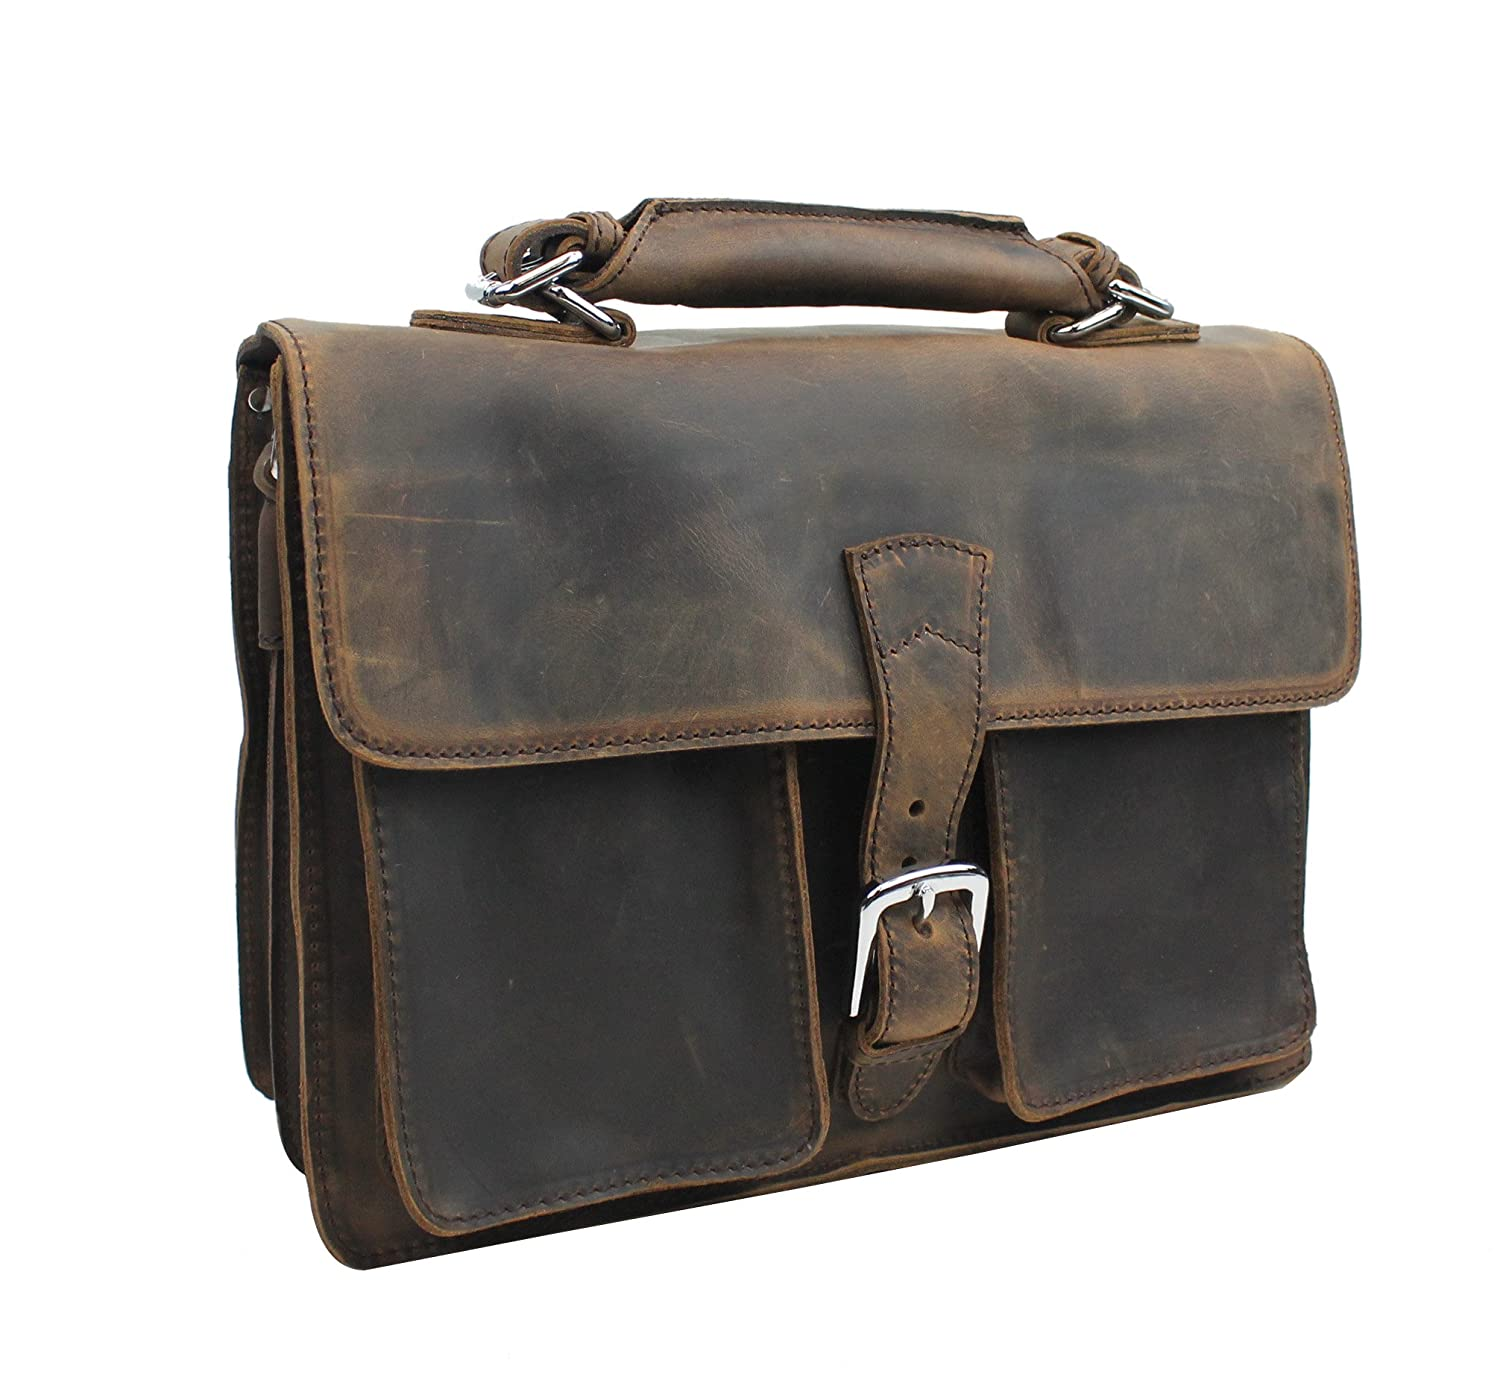 Vagabond Traveler Medium Leather Briefcase L39   B073S9JFQB